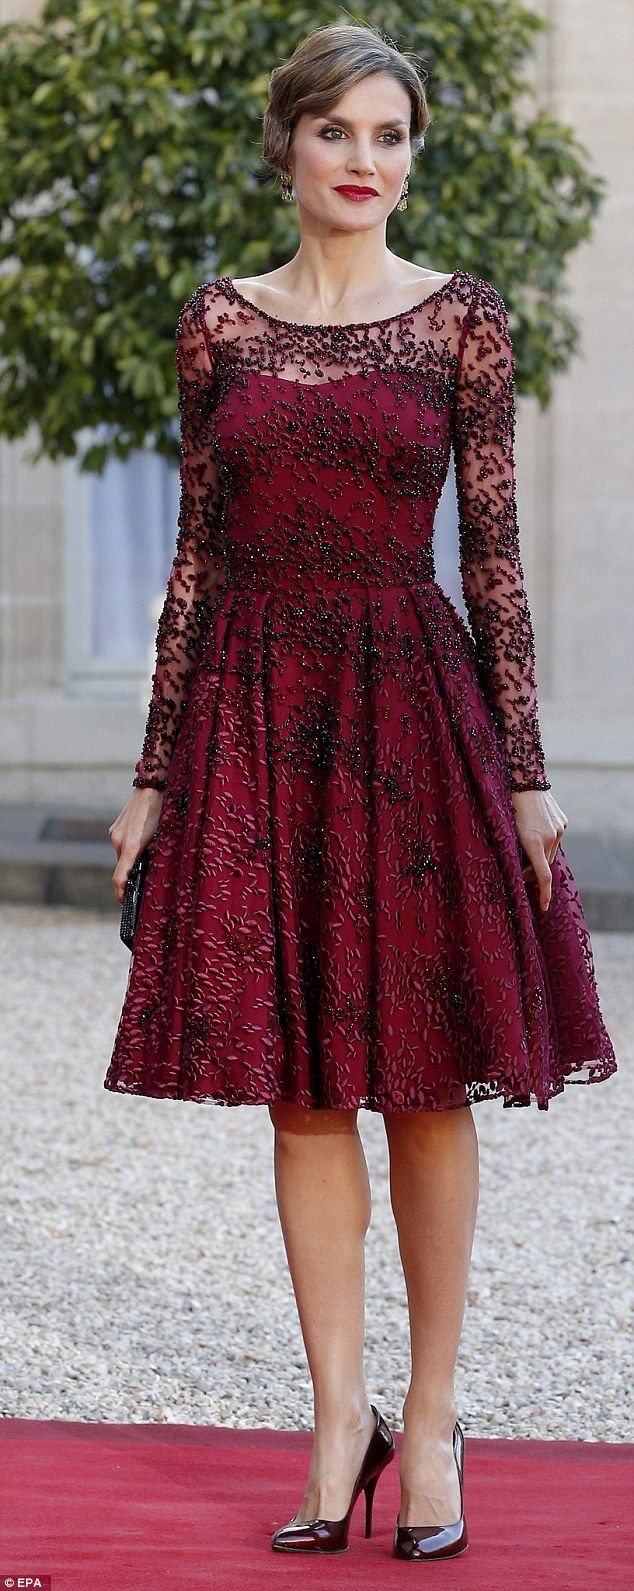 Queen Letizia looked perfect in plum as arrived at a state dinner in France with her husband King Felipe